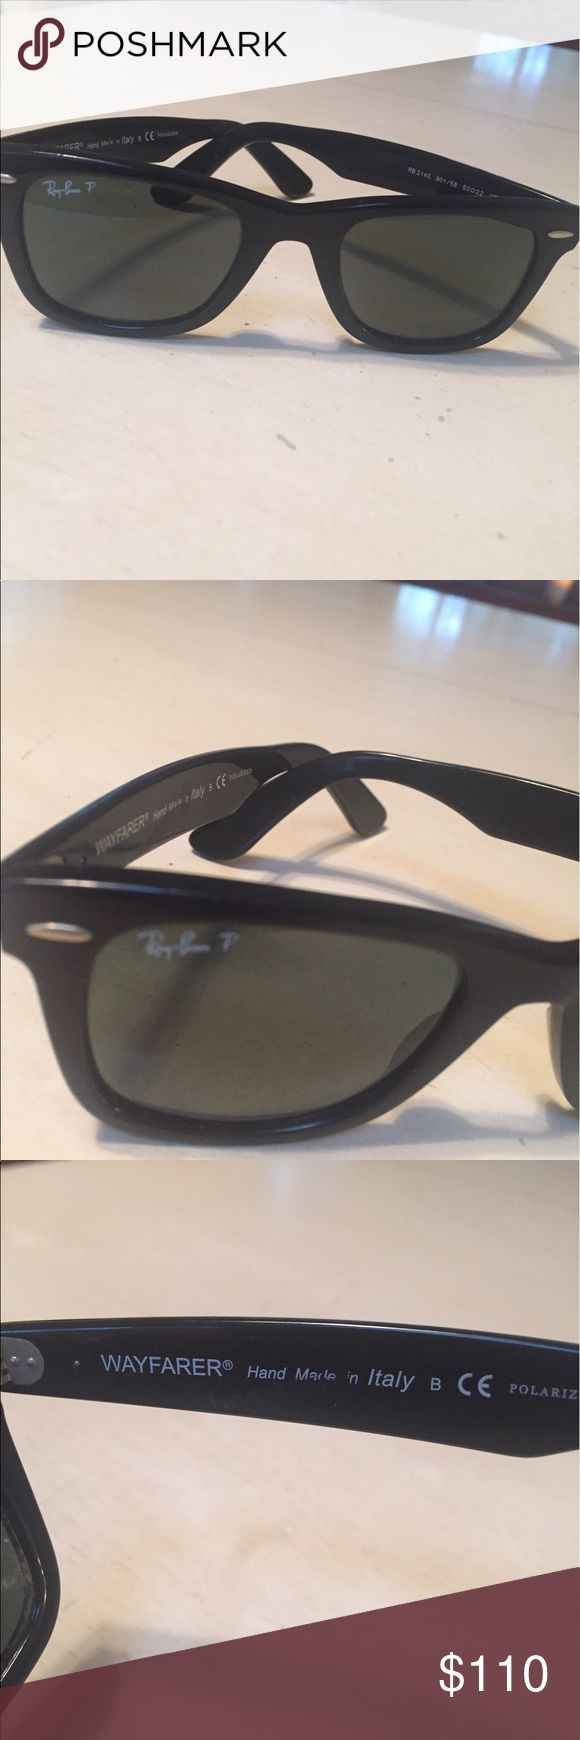 Original Ray Ban Wayfarer sunglasses Ray Ban Wayfarer sunglasses with black polarized frames and lenses.  Excellent condition. Ray-Ban Accessories Sunglasses